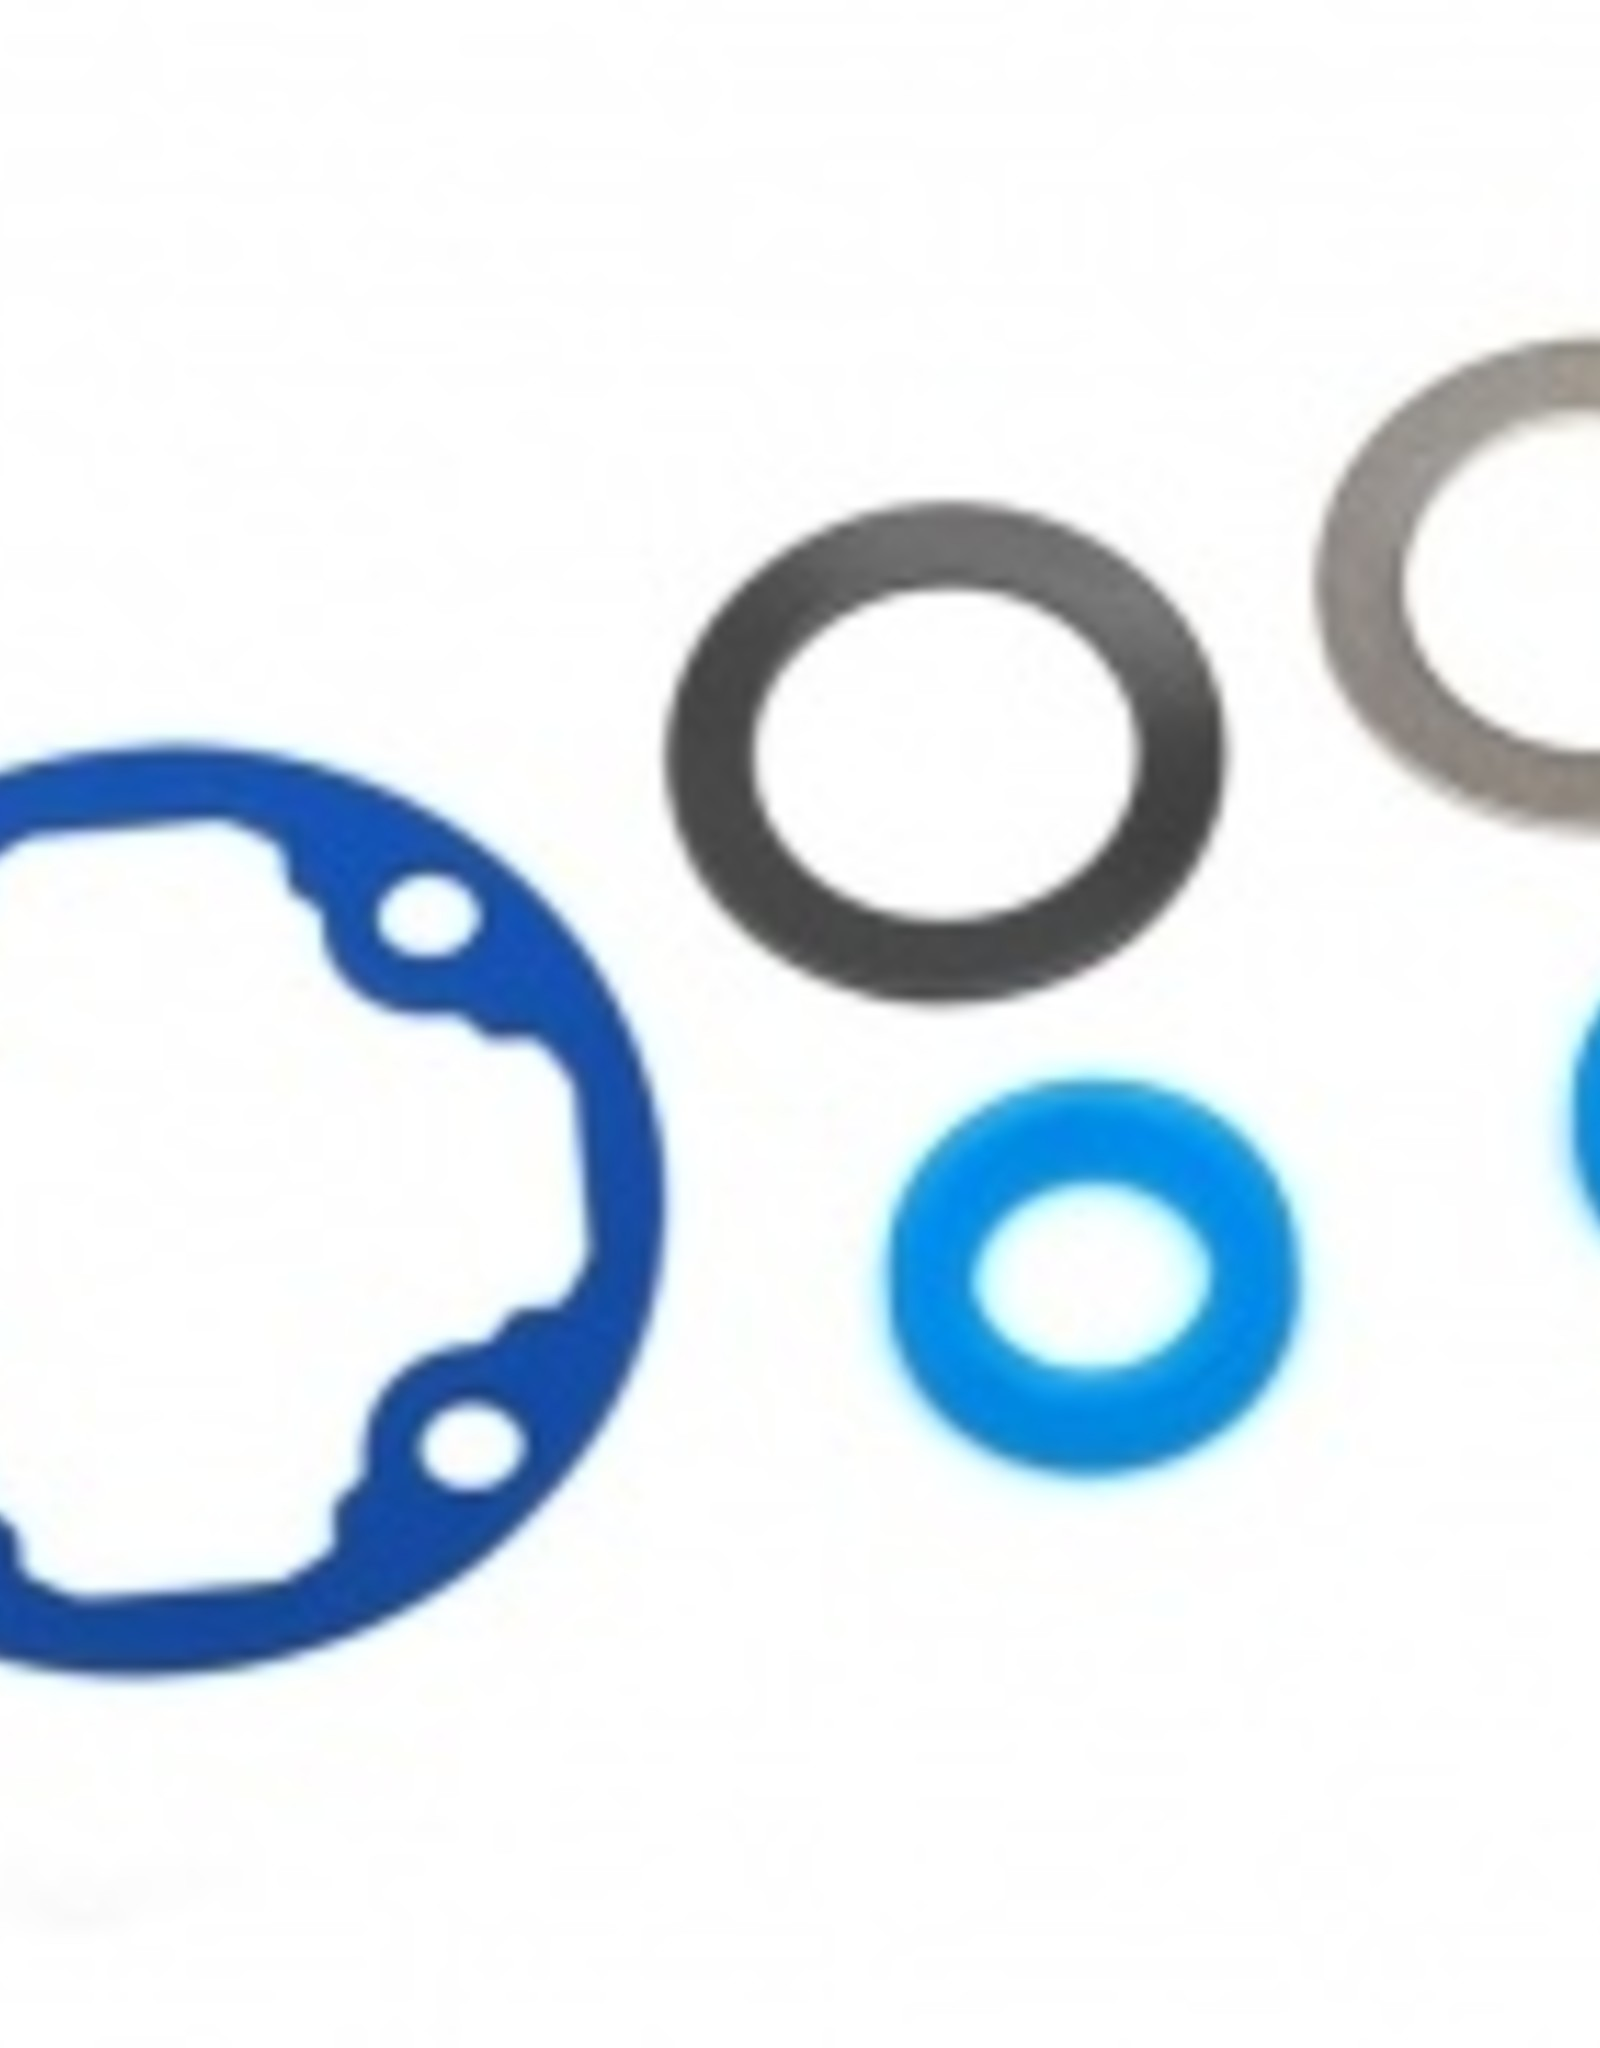 Traxxas Traxxas E-Revo 2.0 Differential gasket/ x-rings (2)/ 12.2x18x0.5 metal washer (1)/ 12.2x18x0.5 PTFE-coated washer (1)